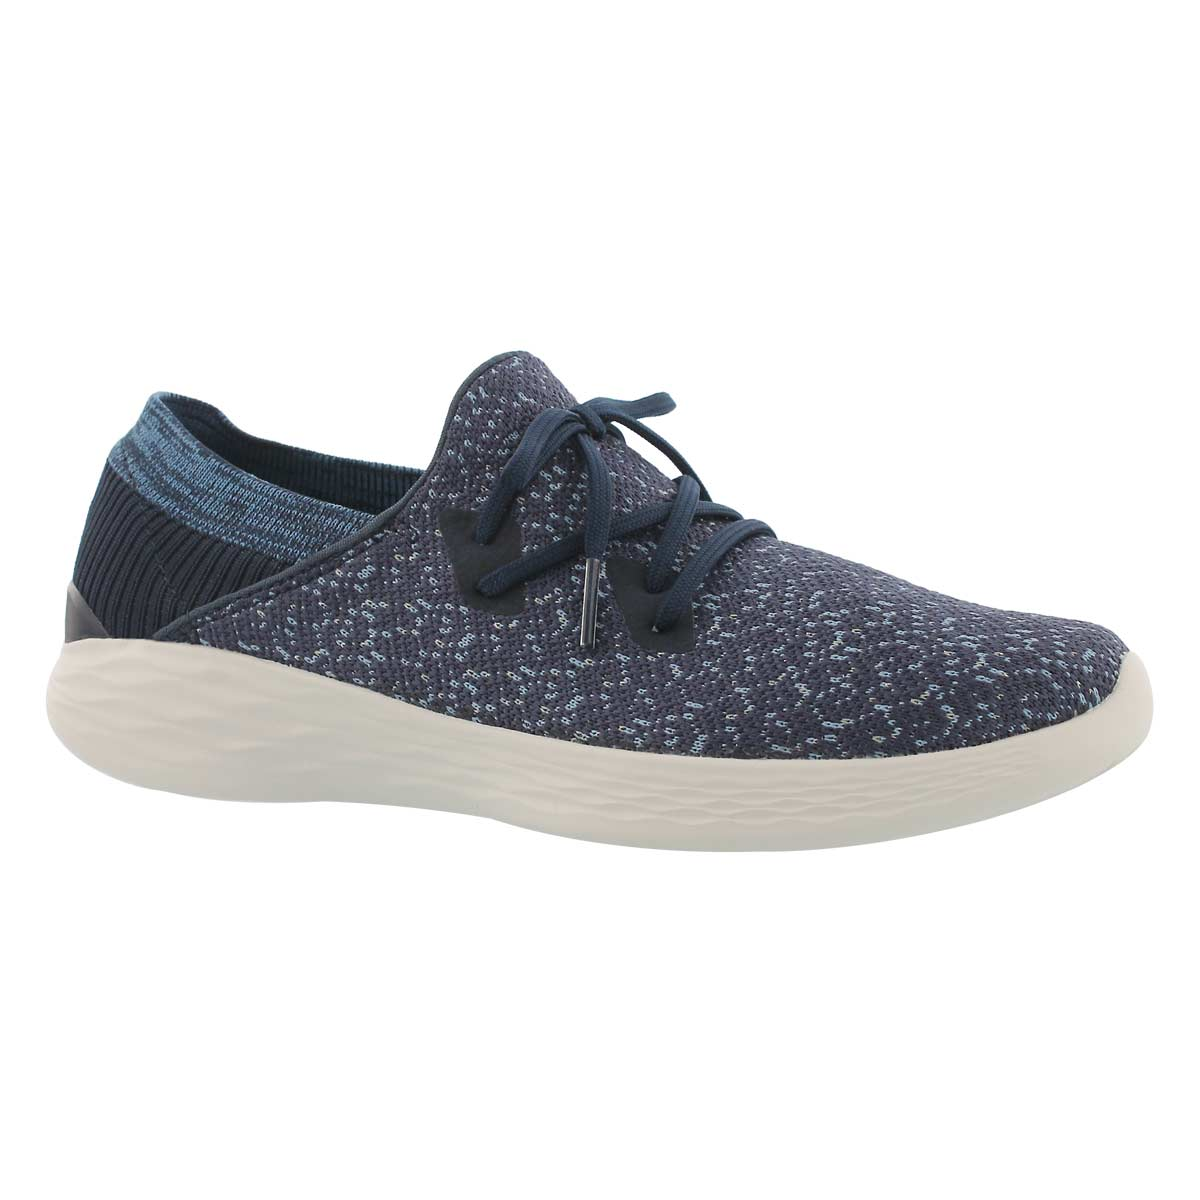 Women's YOU EXHALE navy slip on sneakers